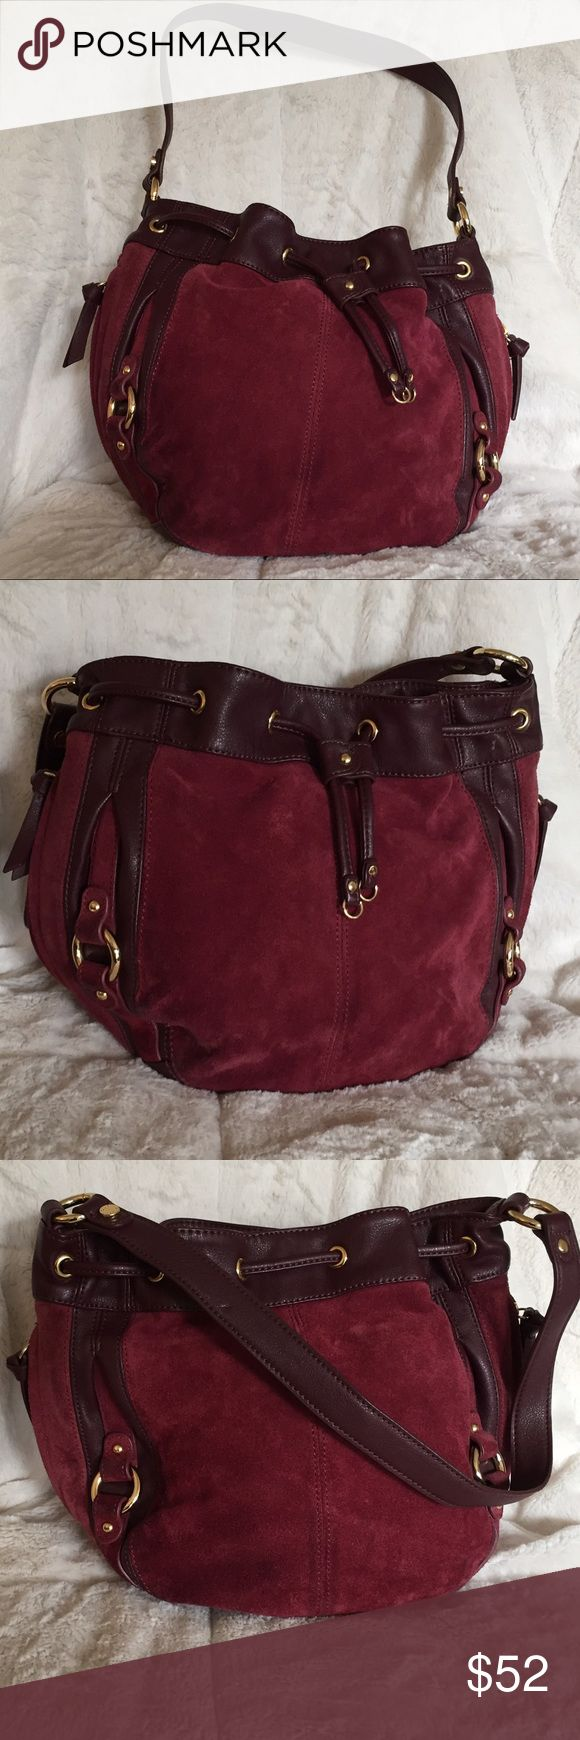 """🍁Tignanello Wine Suede and Leather Bucket Bag. This is such a nice bag, has slight wear where the Suede meets the leather on the bottom. Inside extremely clean. Sides have a vertical zippered pocket. Drawstring and magnet closure. Zippered pocket inside and pouches for cell phone. 10""""H x 12""""L x 6""""W Strap drop 10"""" Wine color Tignanello Bags Shoulder Bags"""